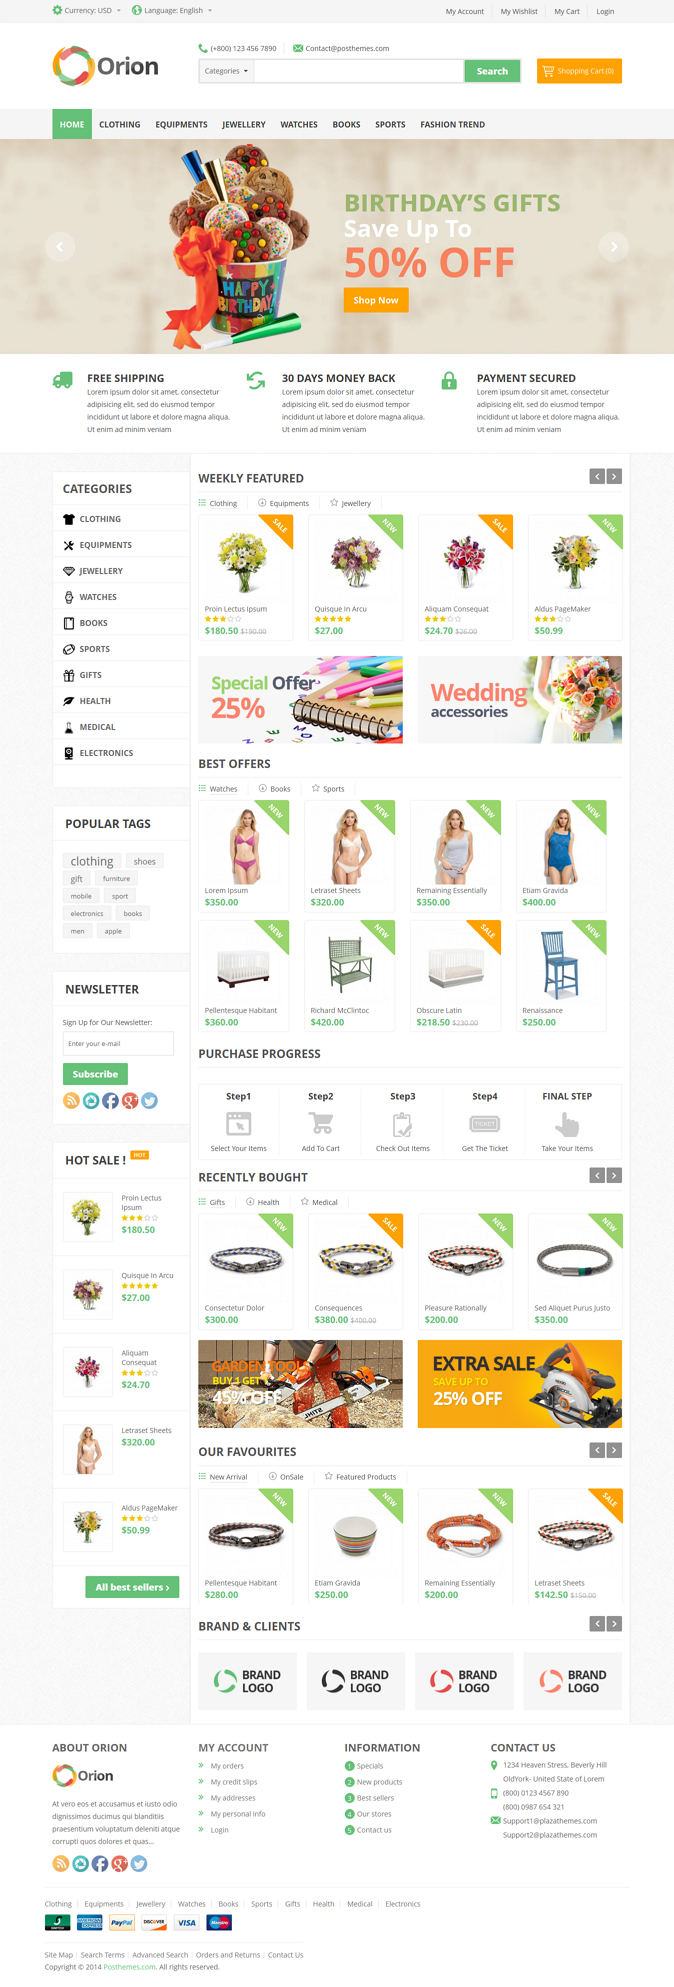 Orion is a mega Prestashop Theme for your eCommerce store comes from Posthemes. It's a great cho ...